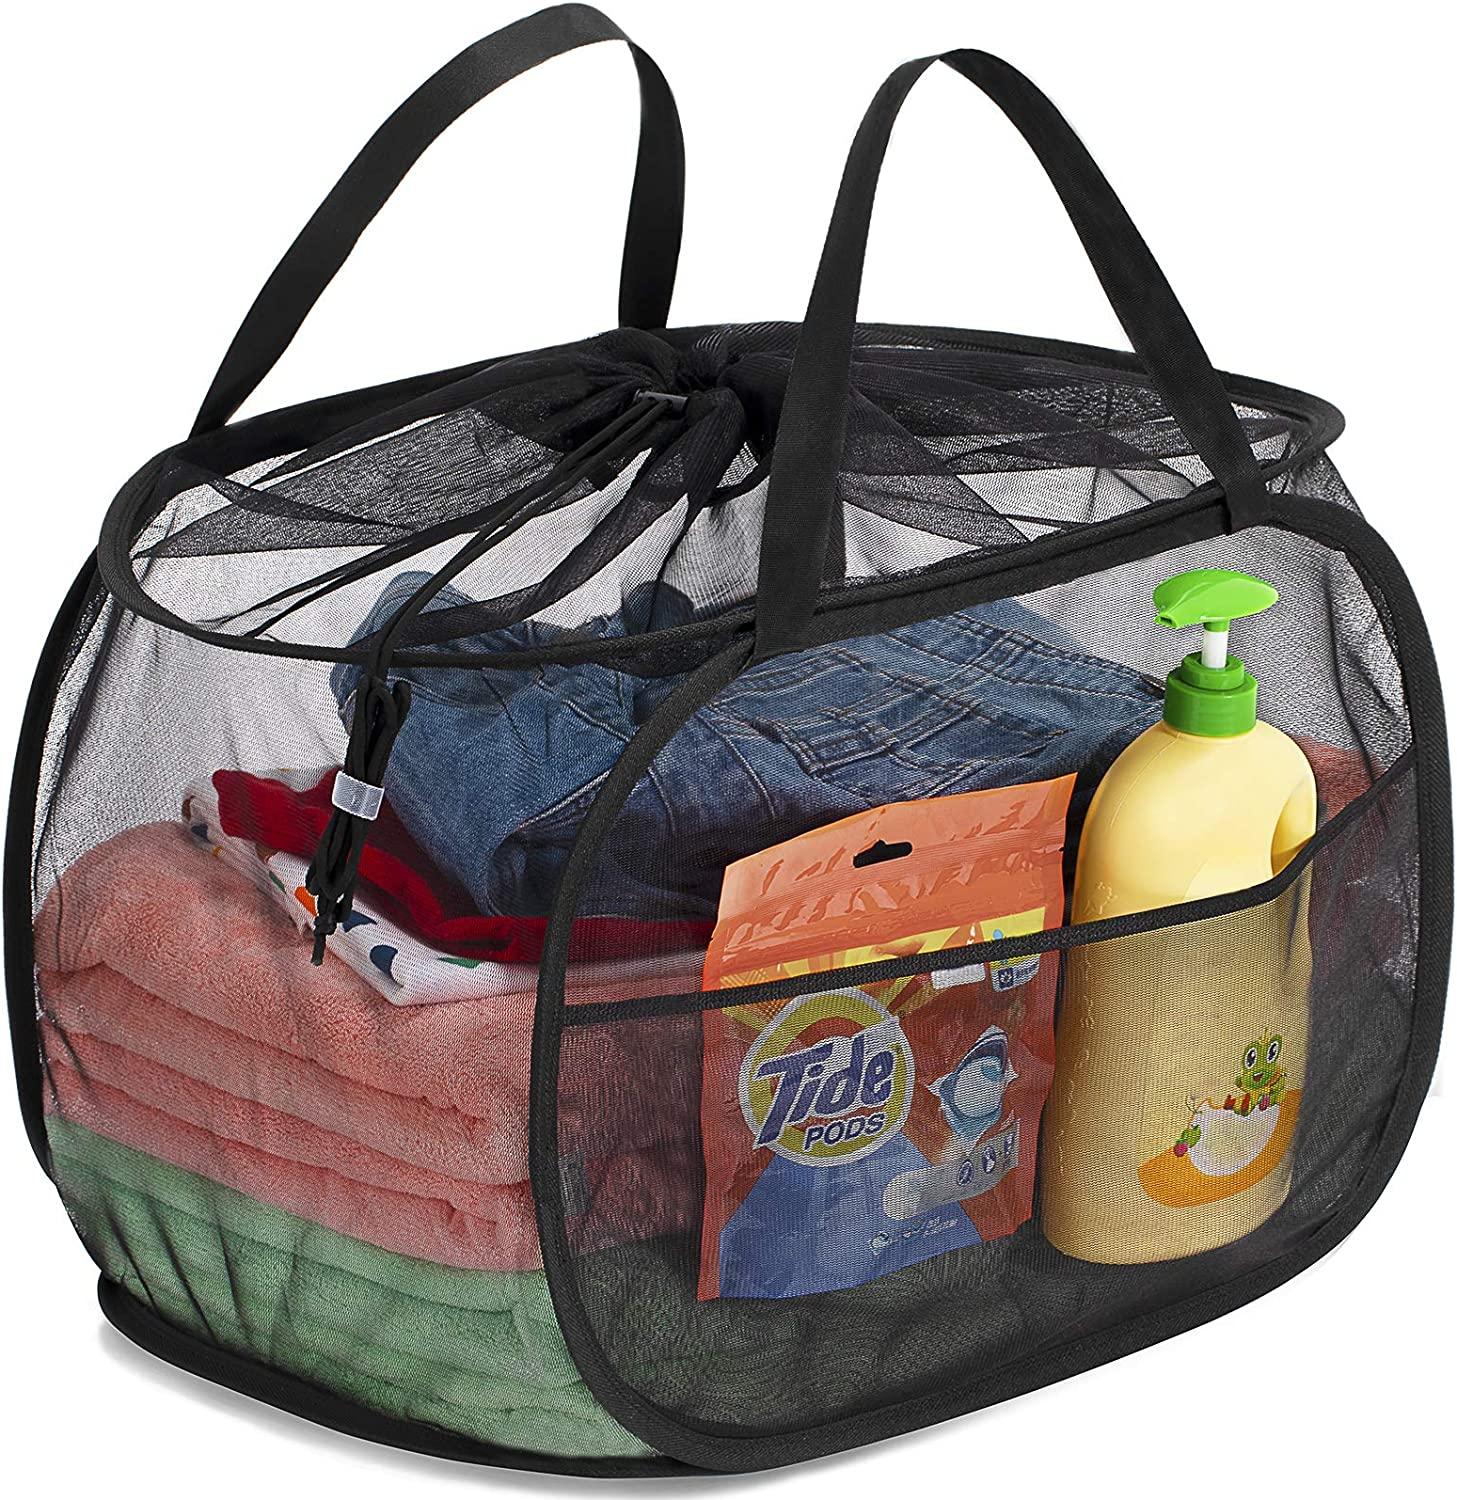 Black TENRAI Drawstring Closure Mesh Pop-Up Laundry Hamper,Large Opening with Two Compartments,Adjustable Handles /& Convenient Side Pocket,Collapsible Laundry Basket Suitable for Home or Travel